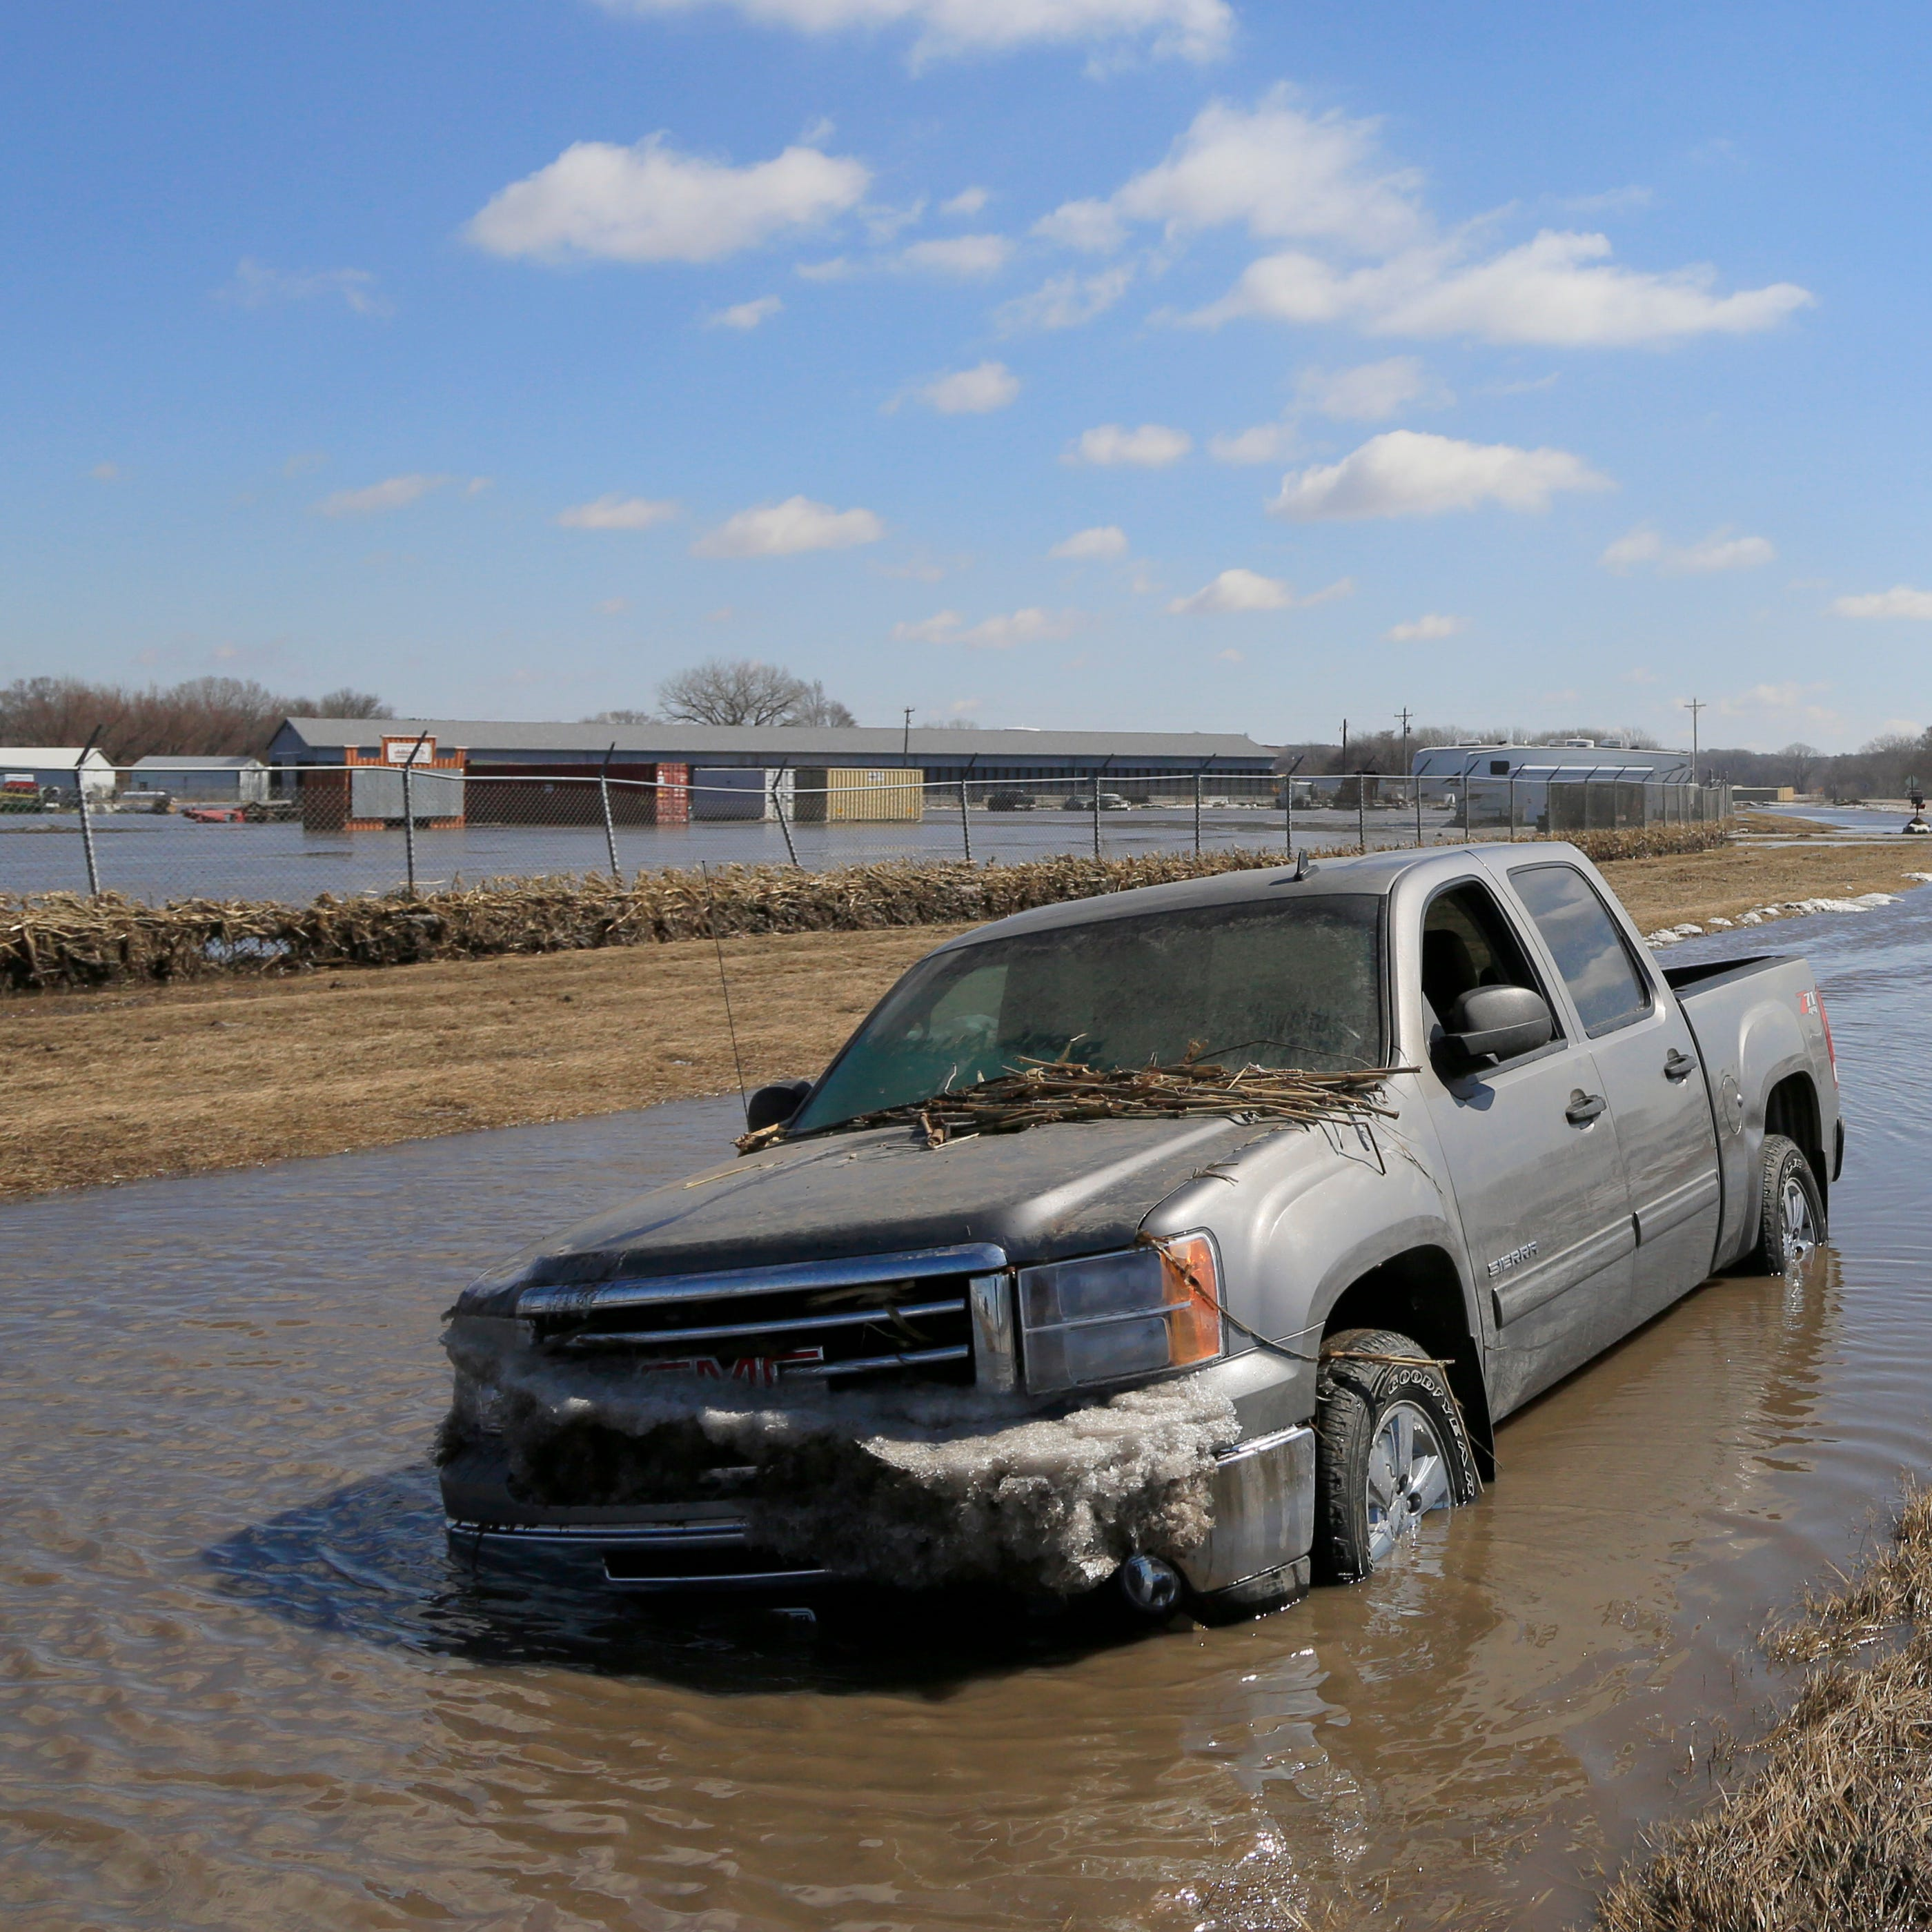 Rescues, evacuations continue as floodwaters breach levees in western Iowa